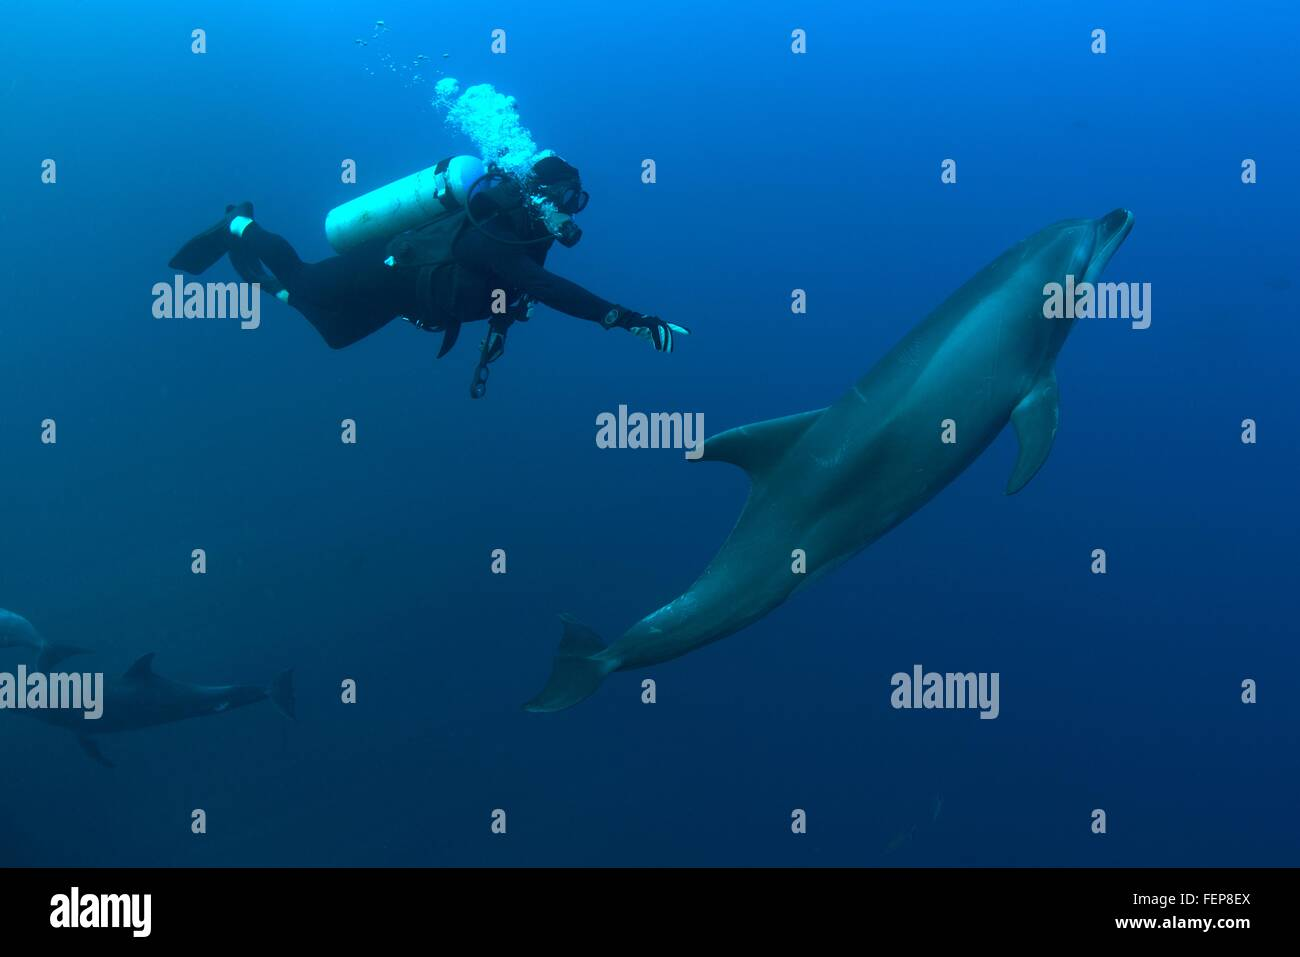 Underwater view of diver reaching for bottlenose dolphin, Revillagigedo Islands, Colima, Mexico Stock Photo